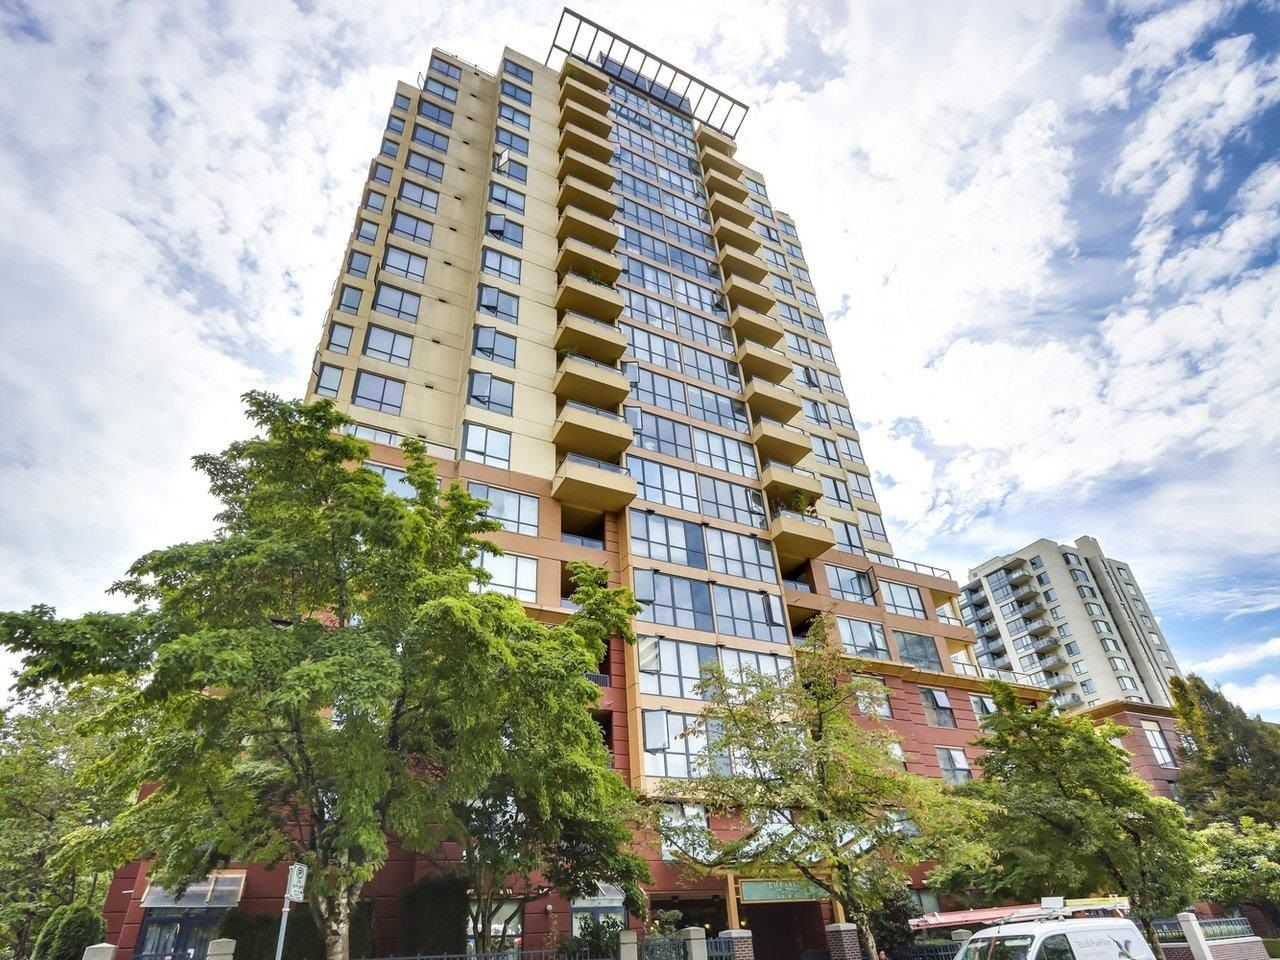 """Main Photo: 309 5288 MELBOURNE Street in Vancouver: Collingwood VE Condo for sale in """"EMERALD PARK PLACE"""" (Vancouver East)  : MLS®# R2616296"""